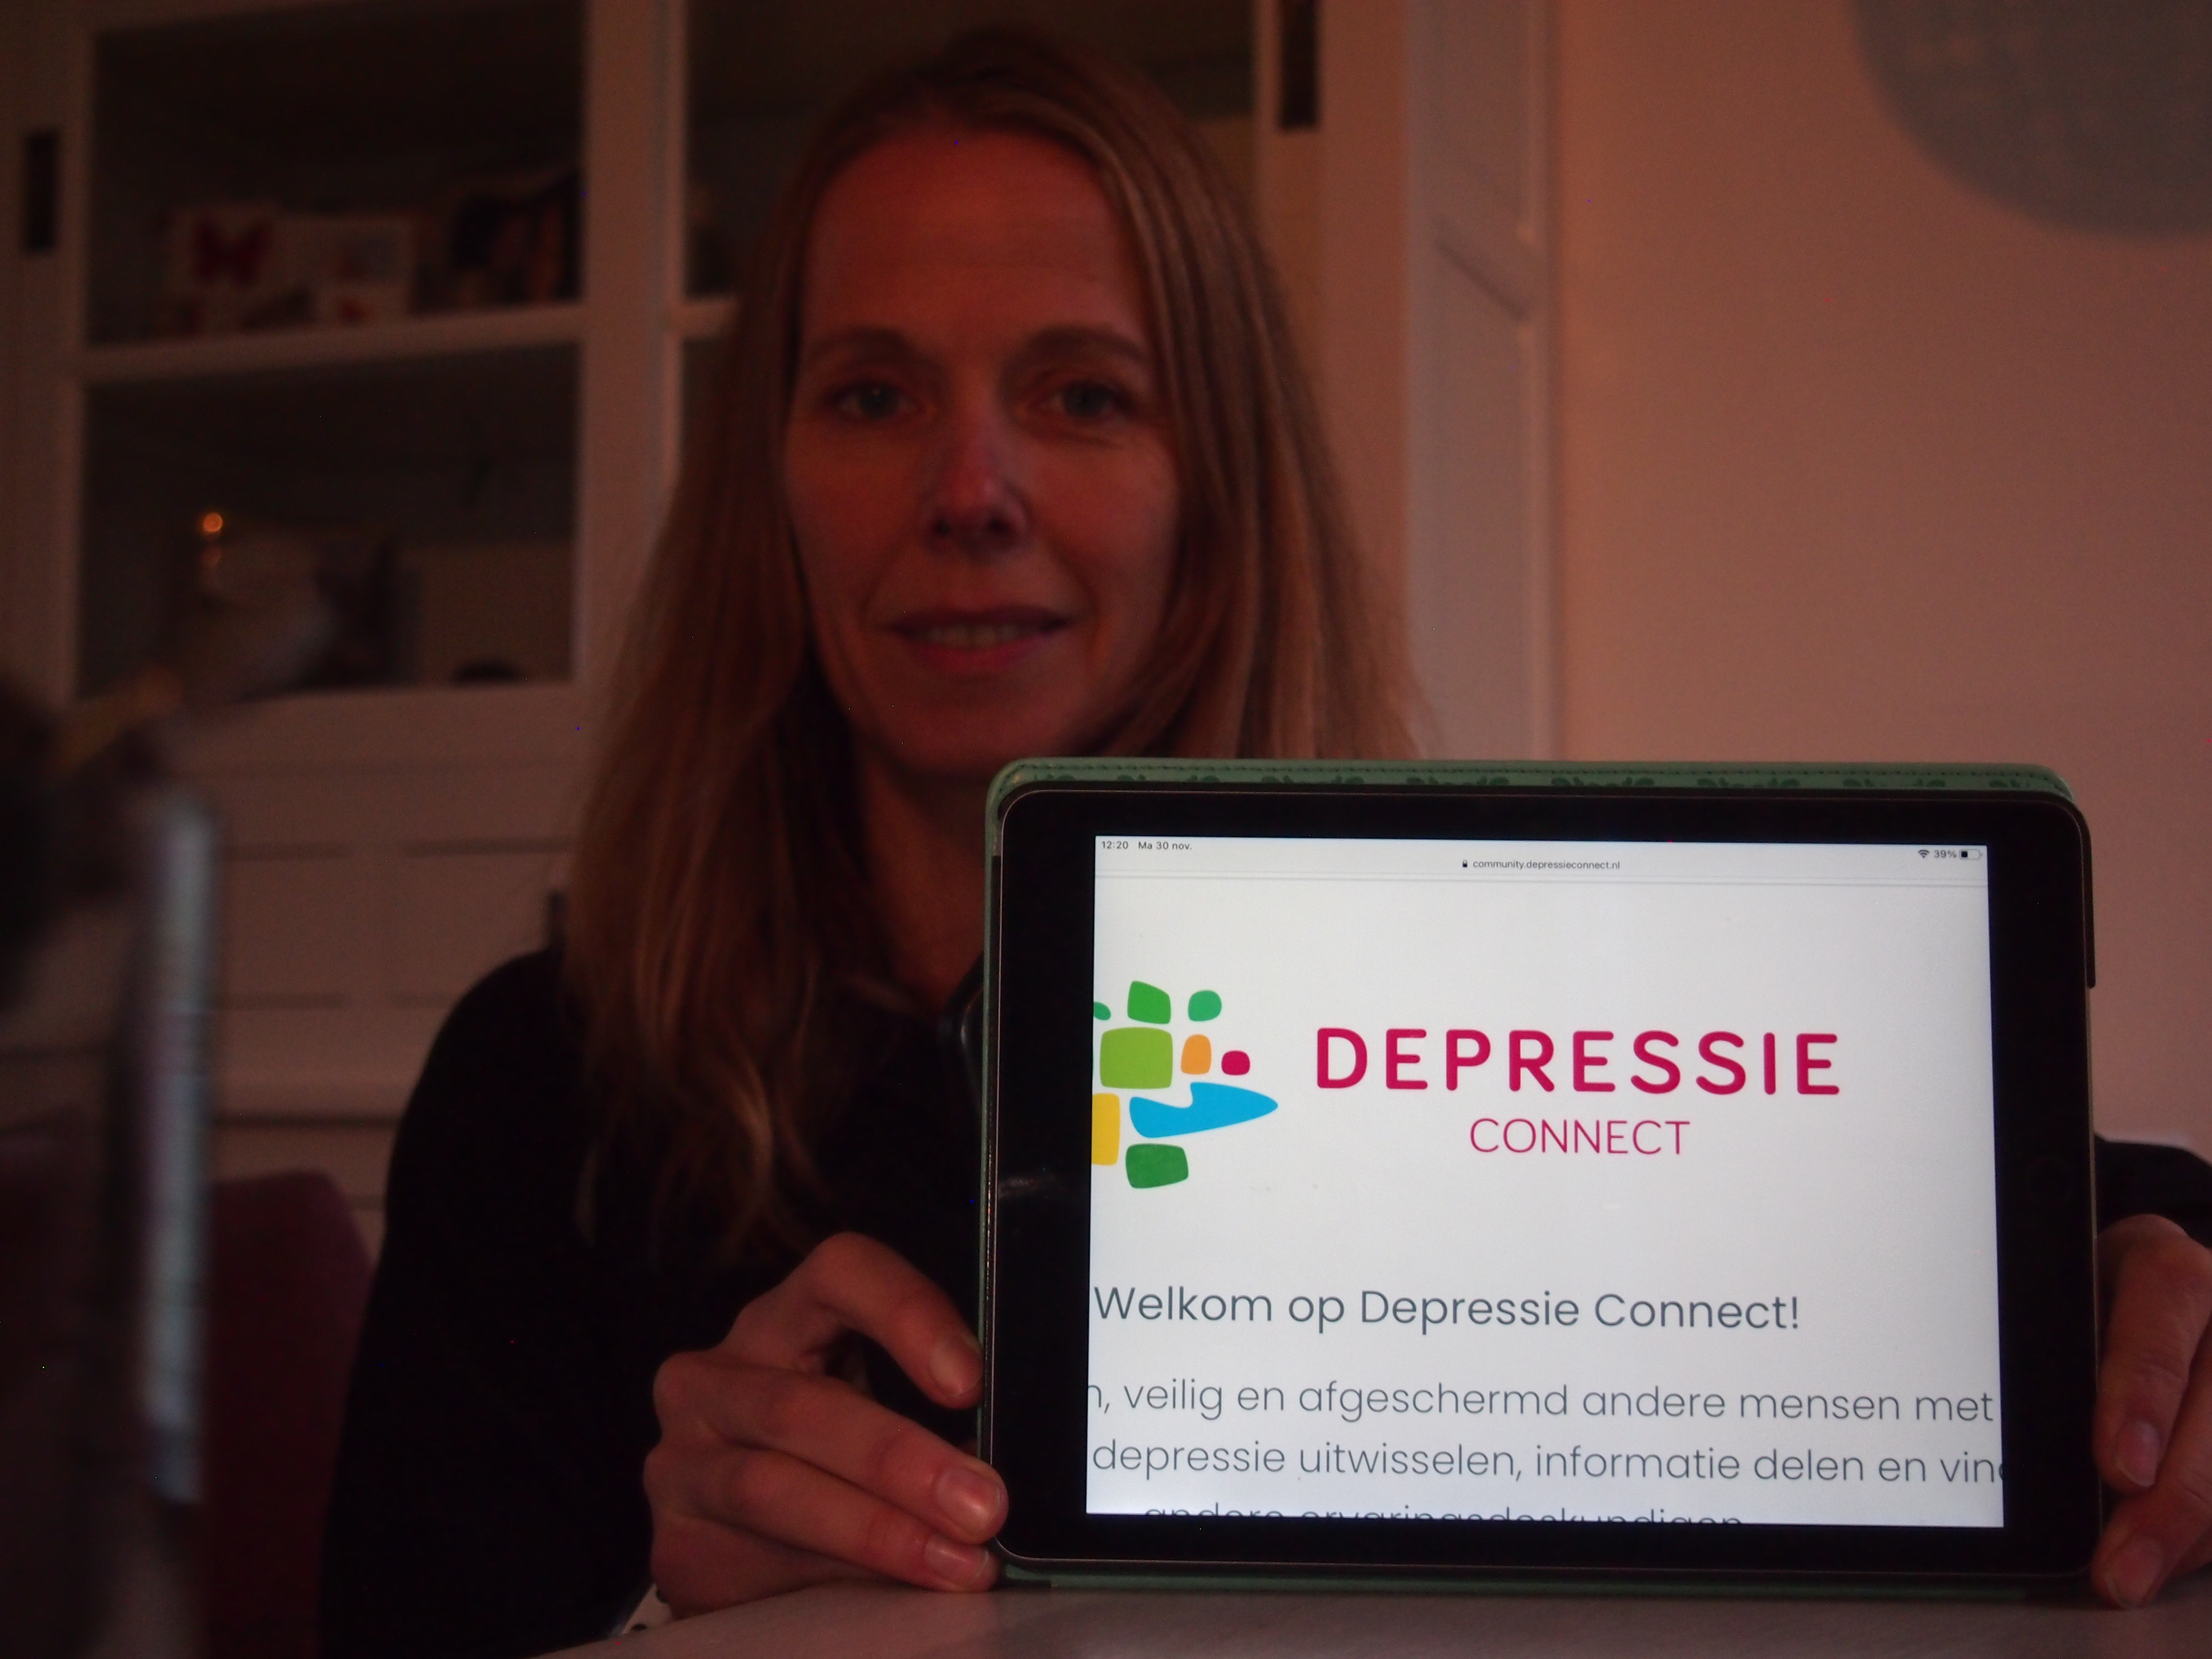 Depressie Connect